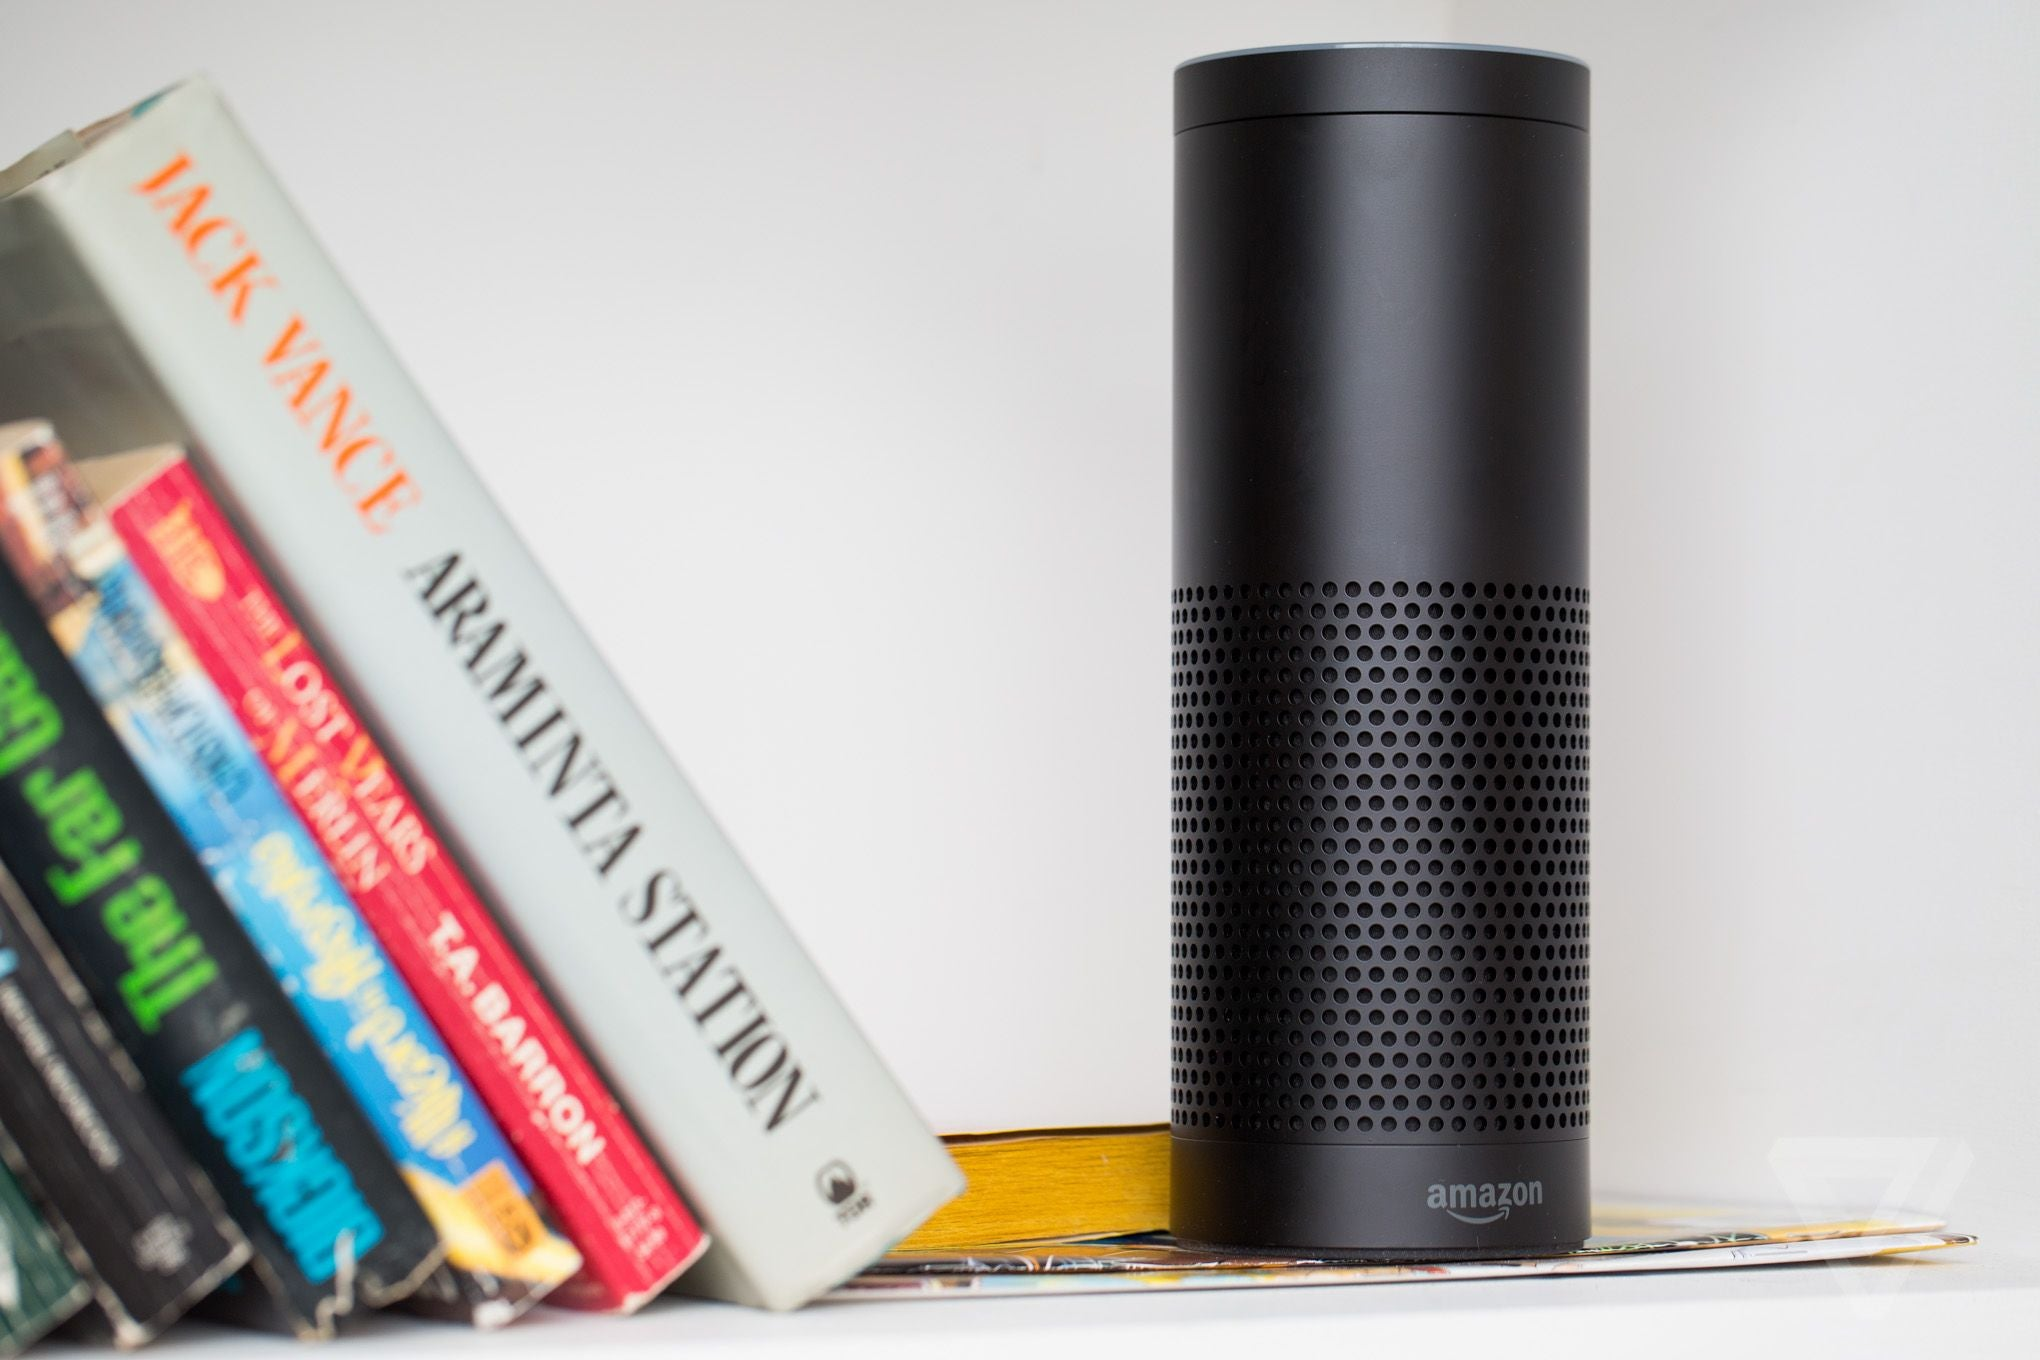 Amazon Echo photo from TheVerge.com